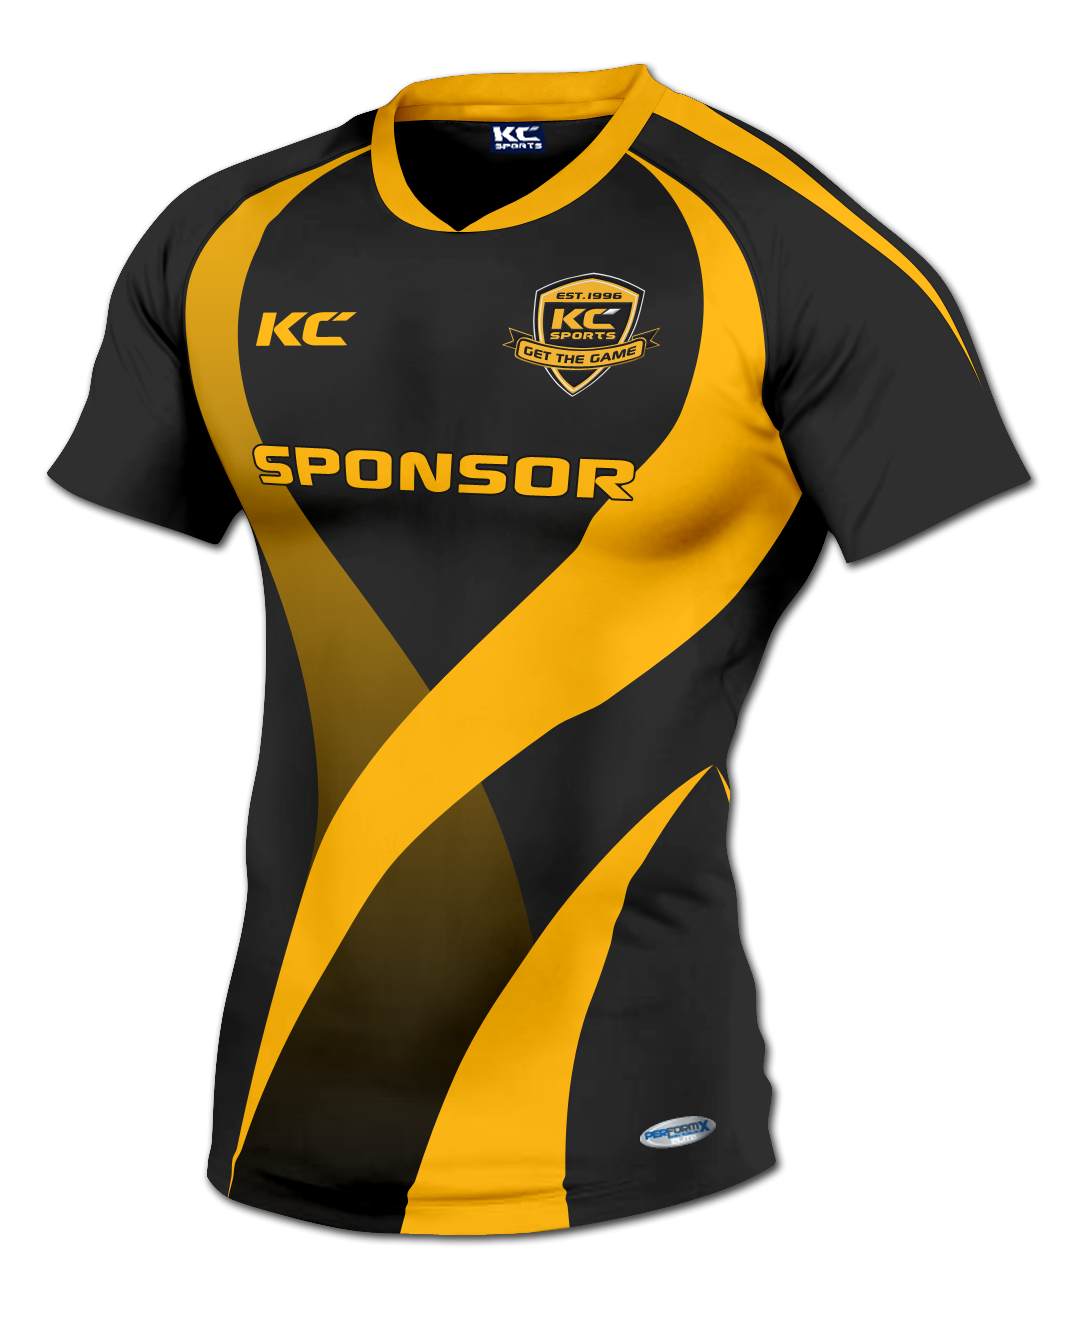 best of rugby jersey - Google Search · Uniformes De FútbolCamisetas ...